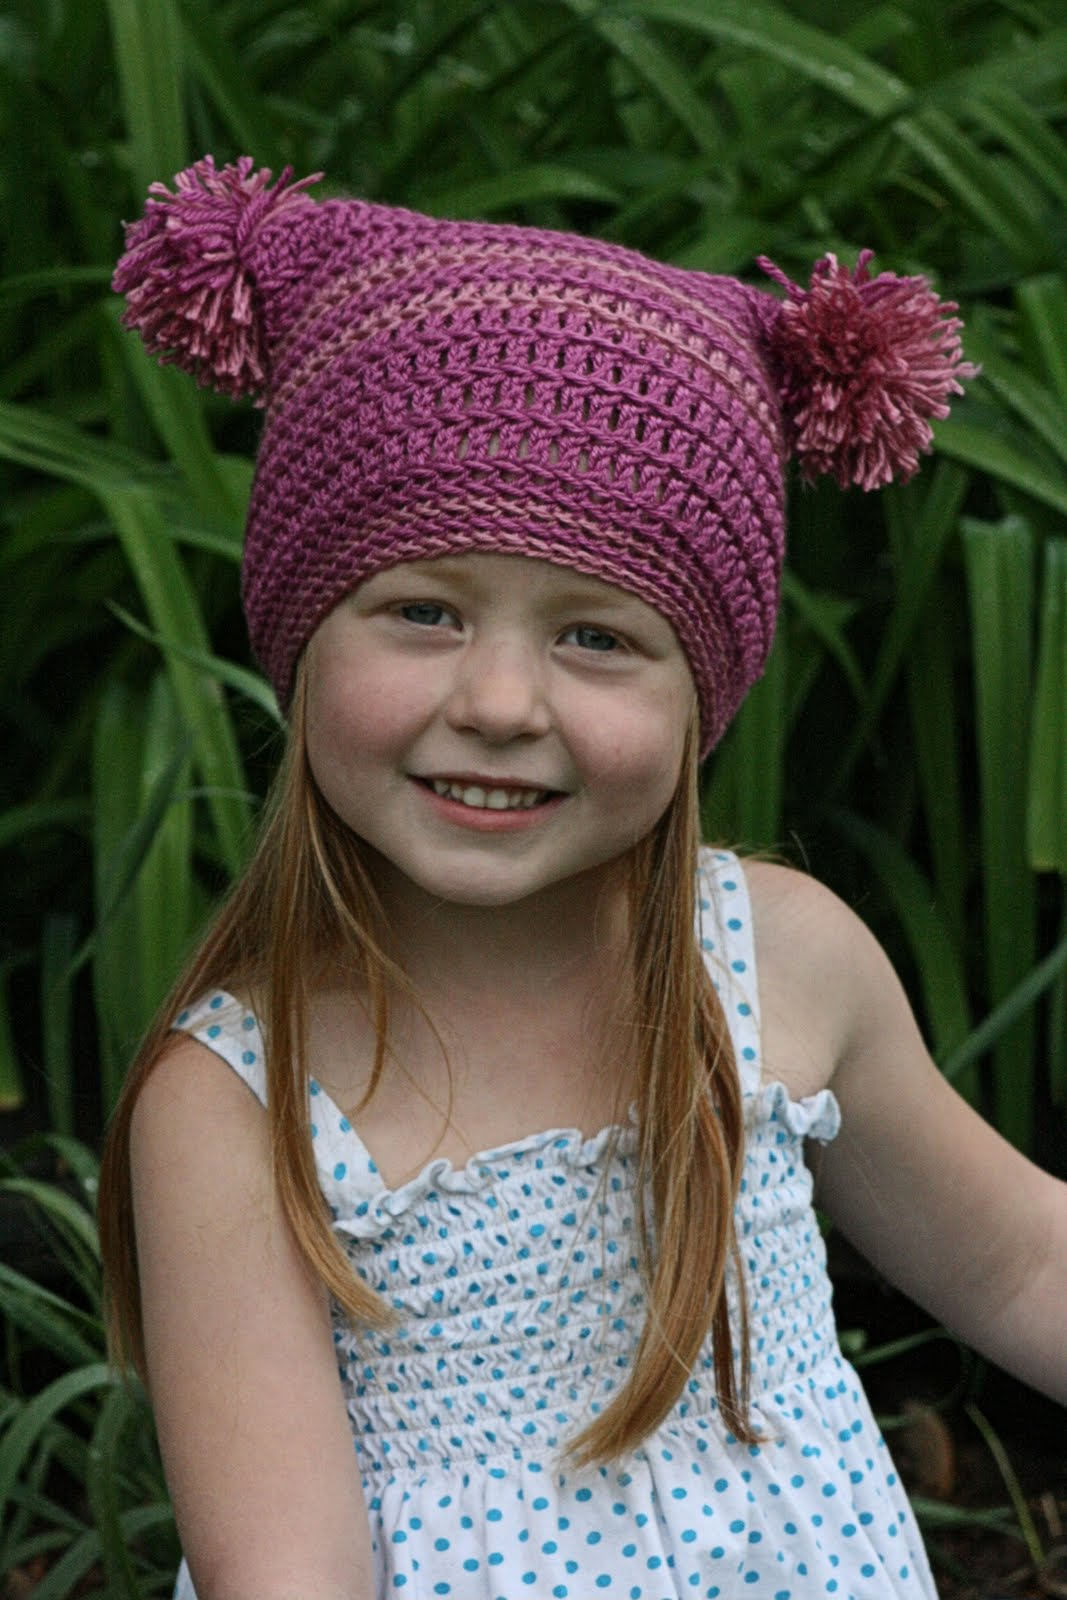 Double Pom Pom Hat Free Crochet Pattern for Beginner - Cool Creativities d4b48aca3e7